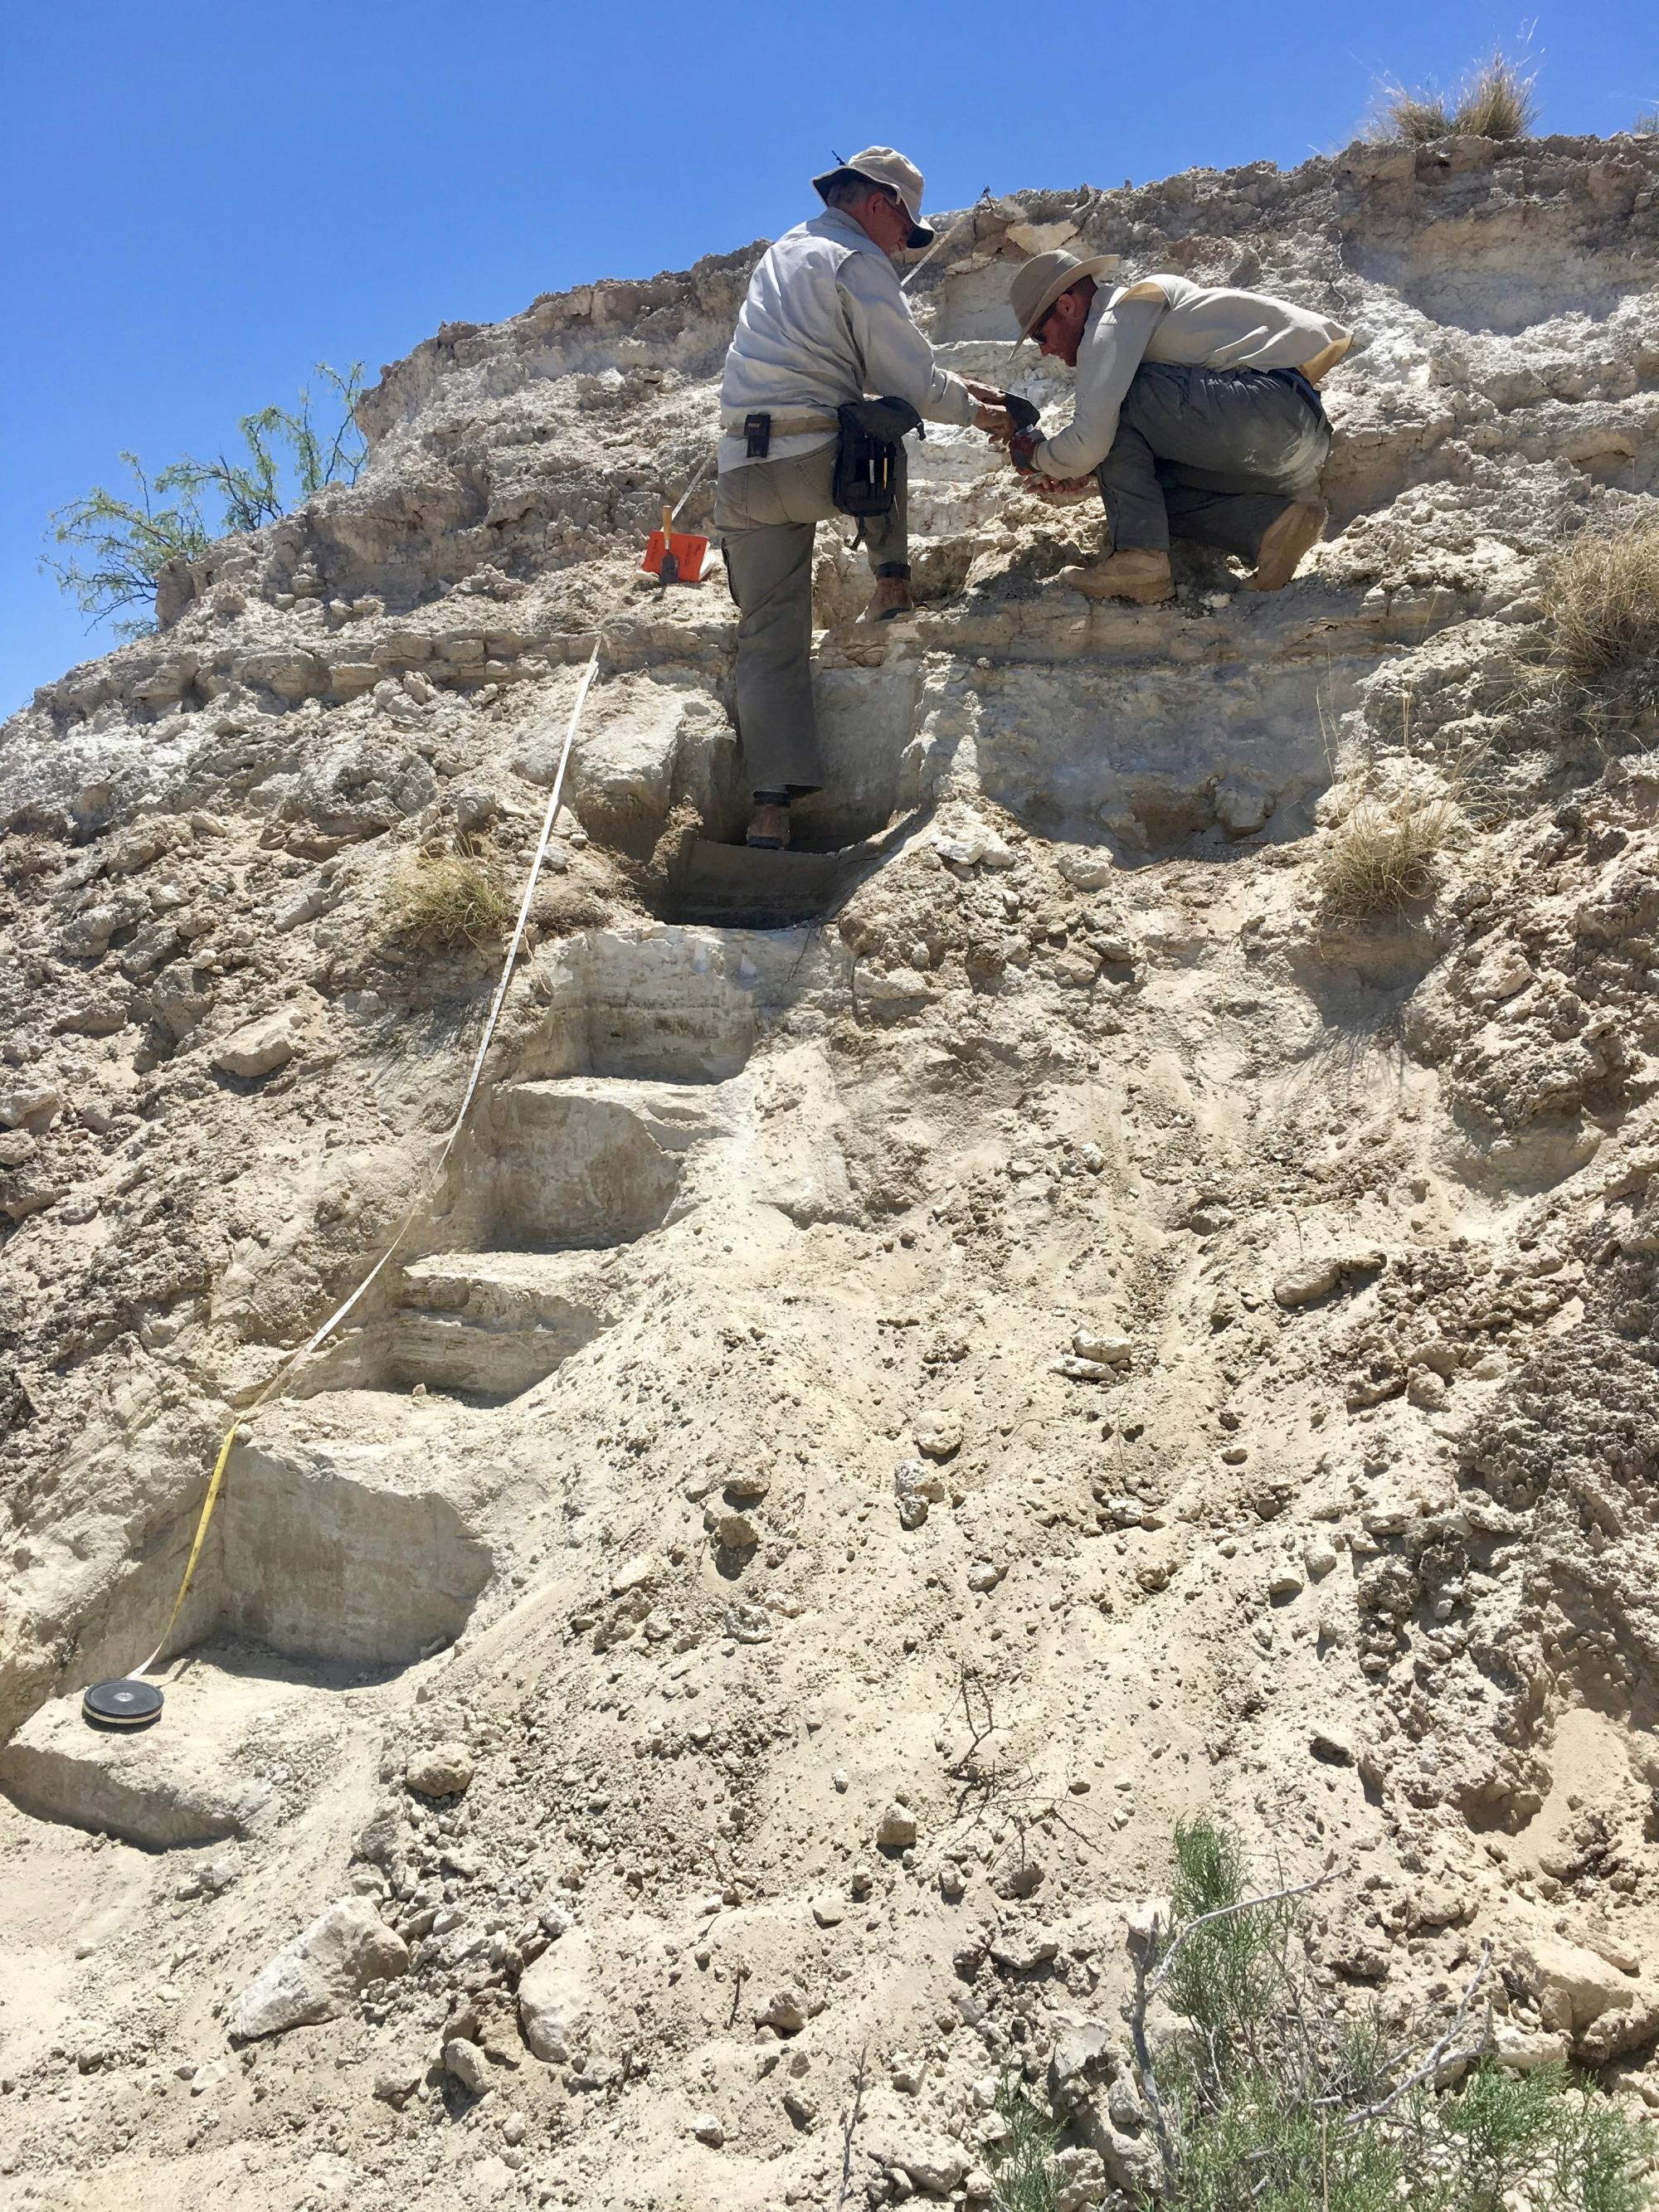 UA professor Vance Holliday  and UA doctoral student Brendan Fenerty work on the section of exposed lake deposits at New Mexico's White Sands National Monument.